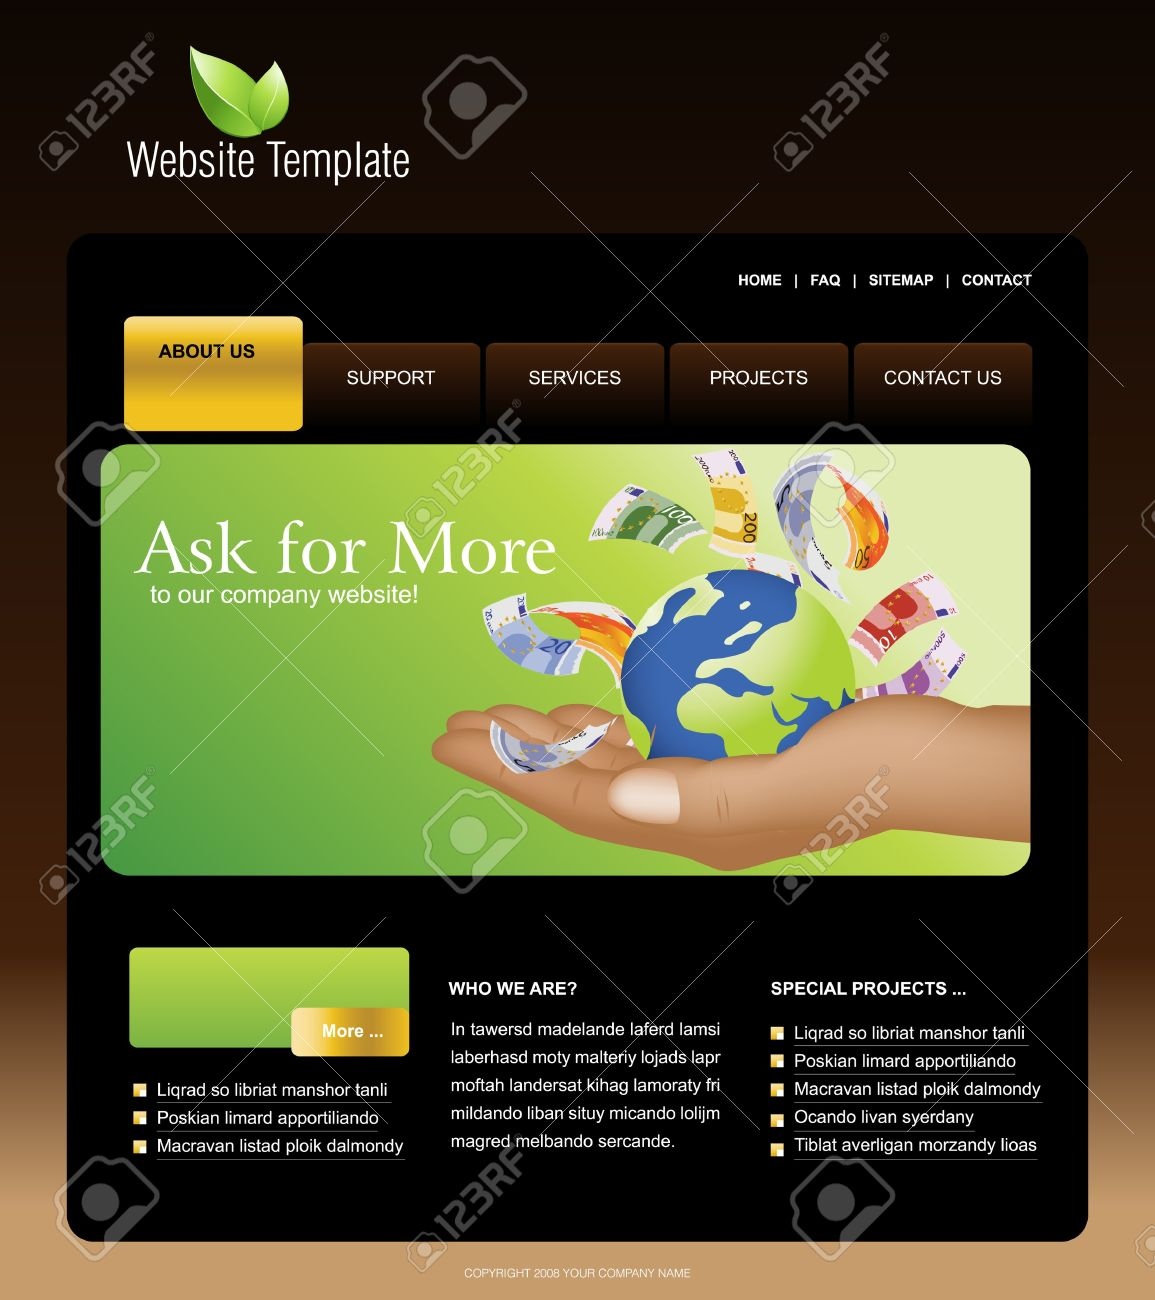 Website template easy to use in adobe photoshop flash or website template easy to use in adobe photoshop flash or illustrator to export it pronofoot35fo Gallery